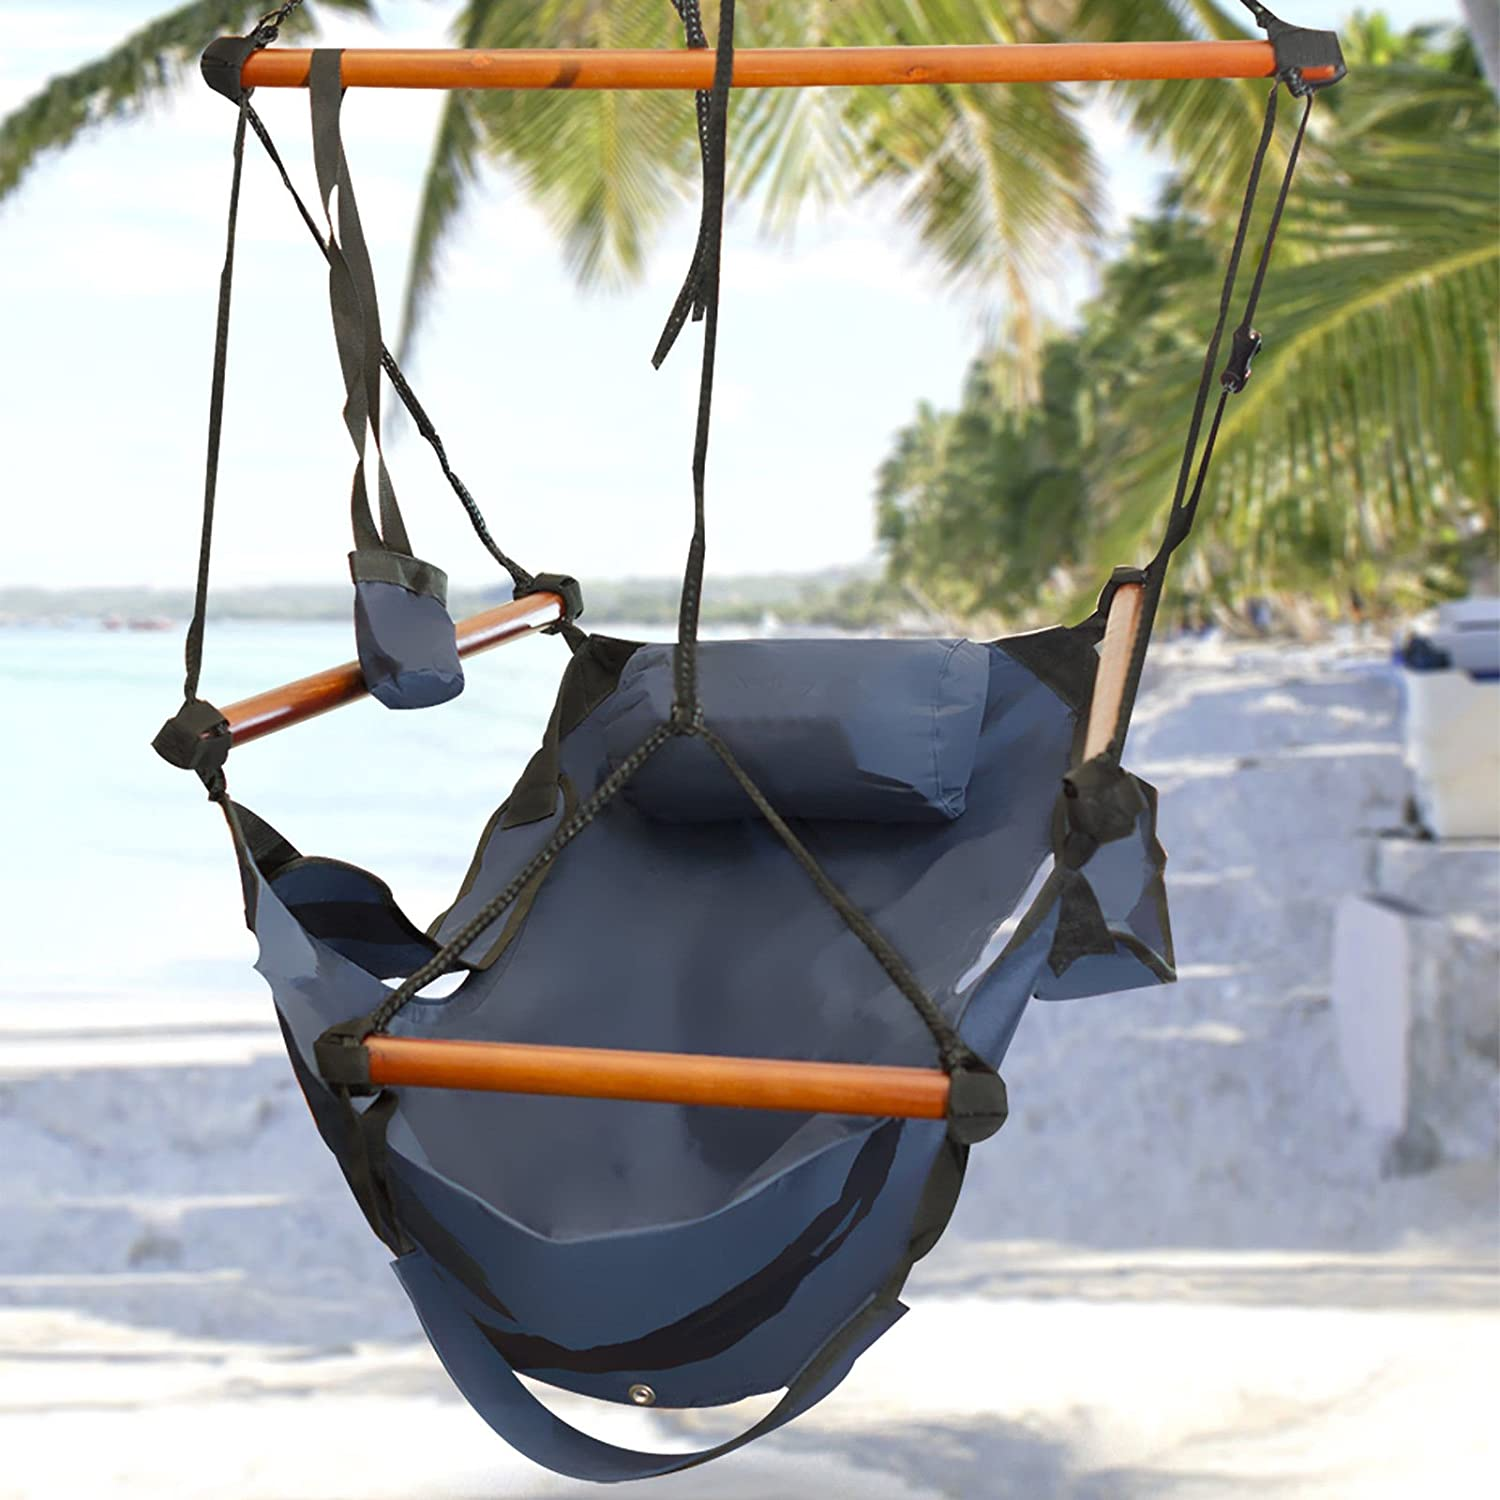 pinterest quality hammocksuk chair and chairs swinging hammocks hanging images best colour lazyrezt hammock seat on xl